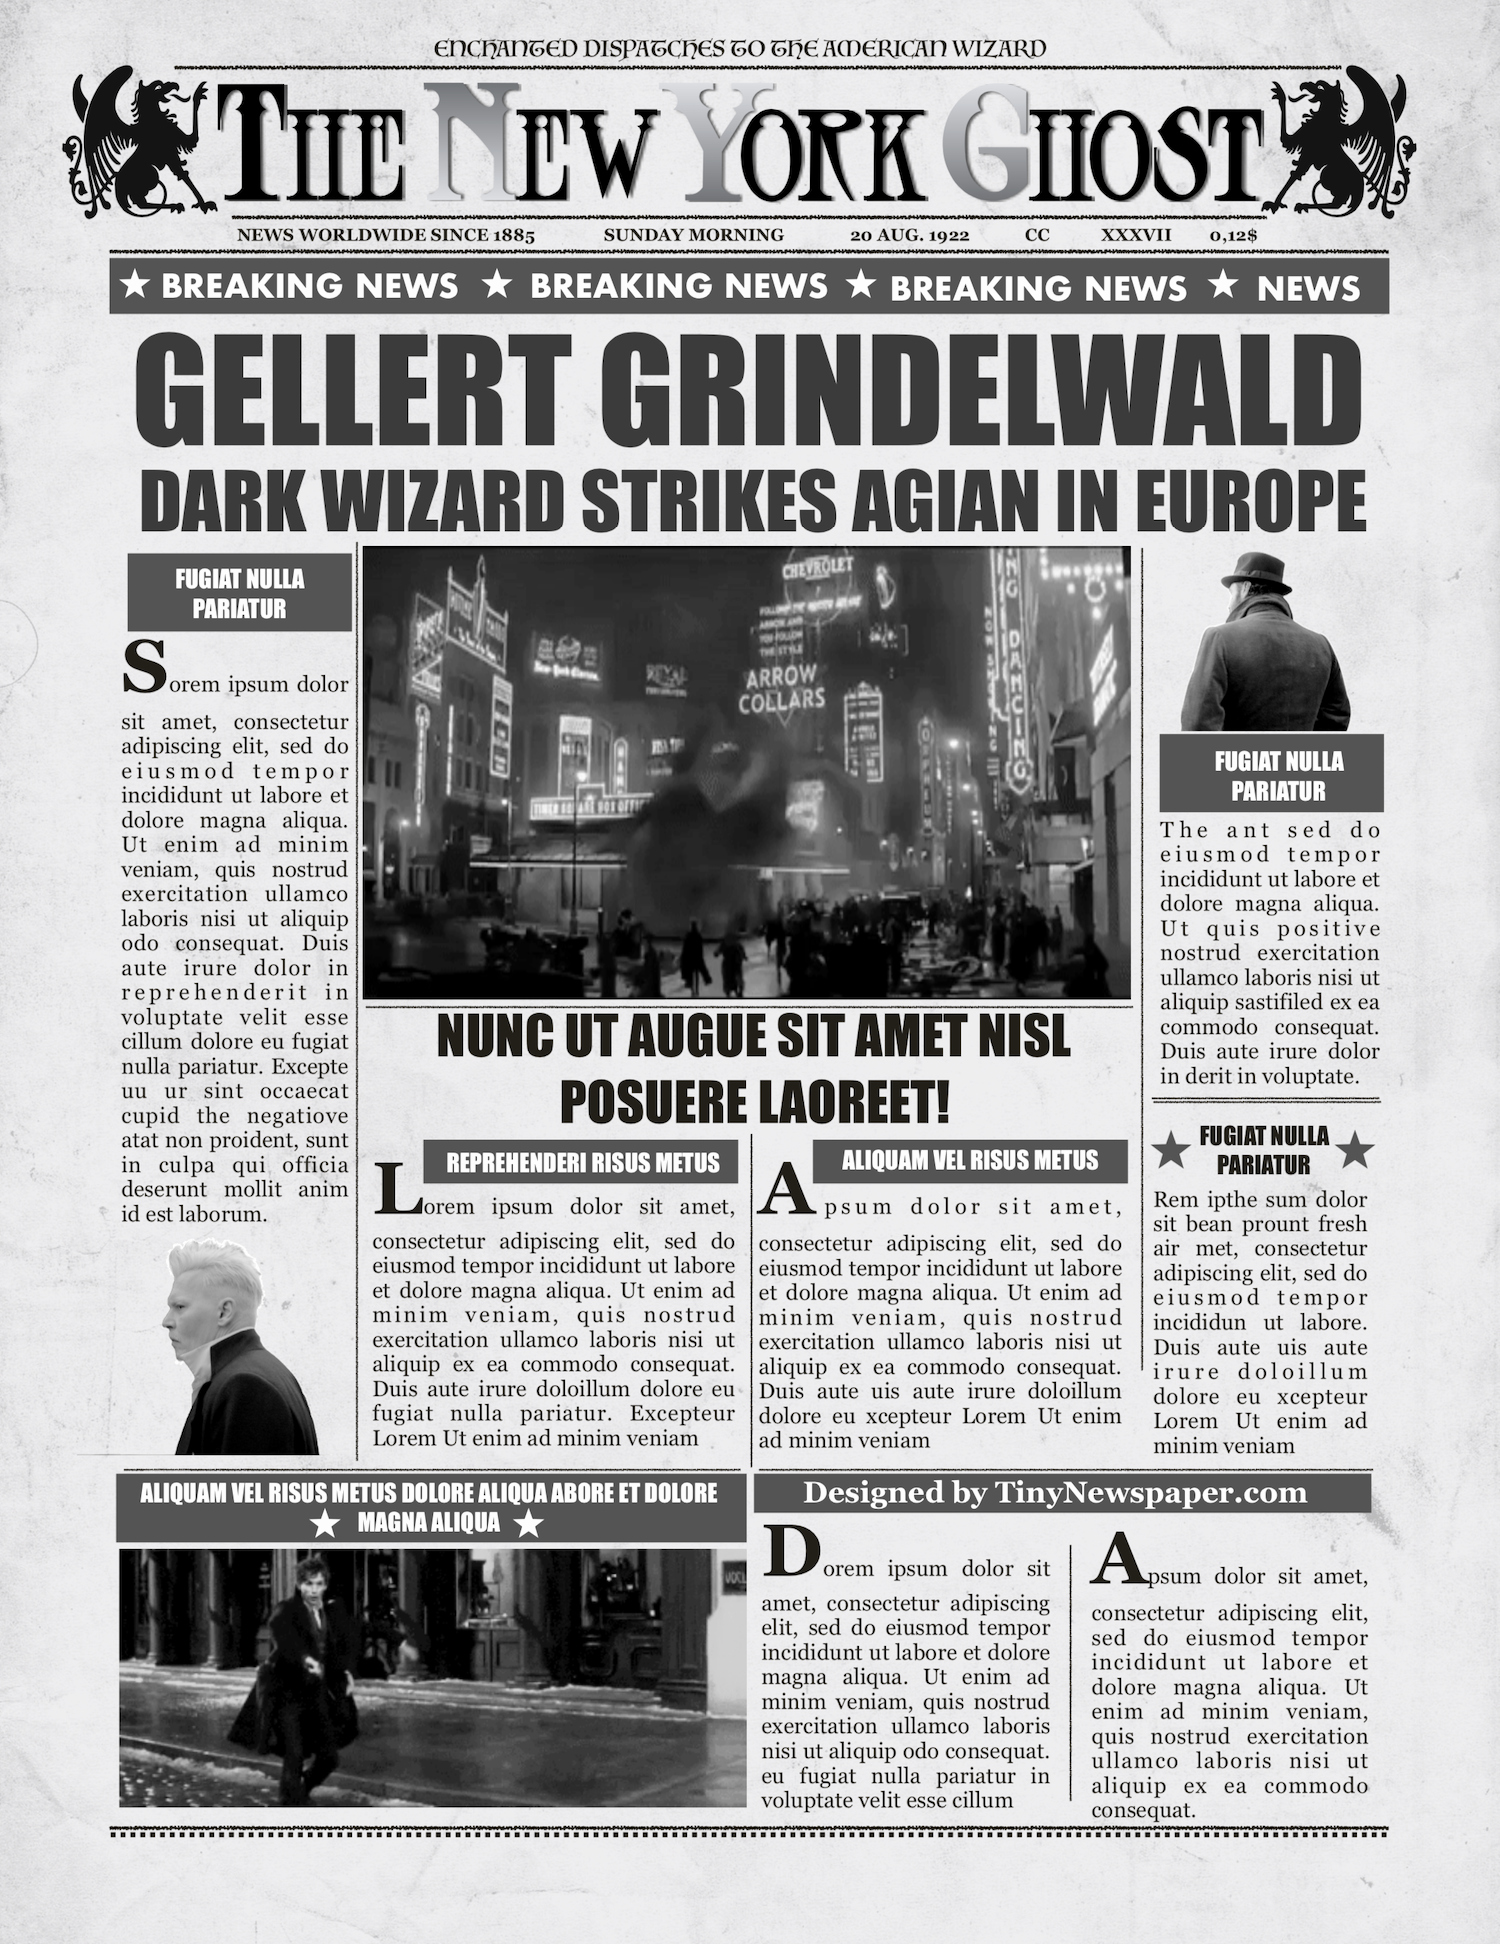 New York Times Newspaper Template Inspirational Daily Prophet Newspaper Template Harry Potter Word